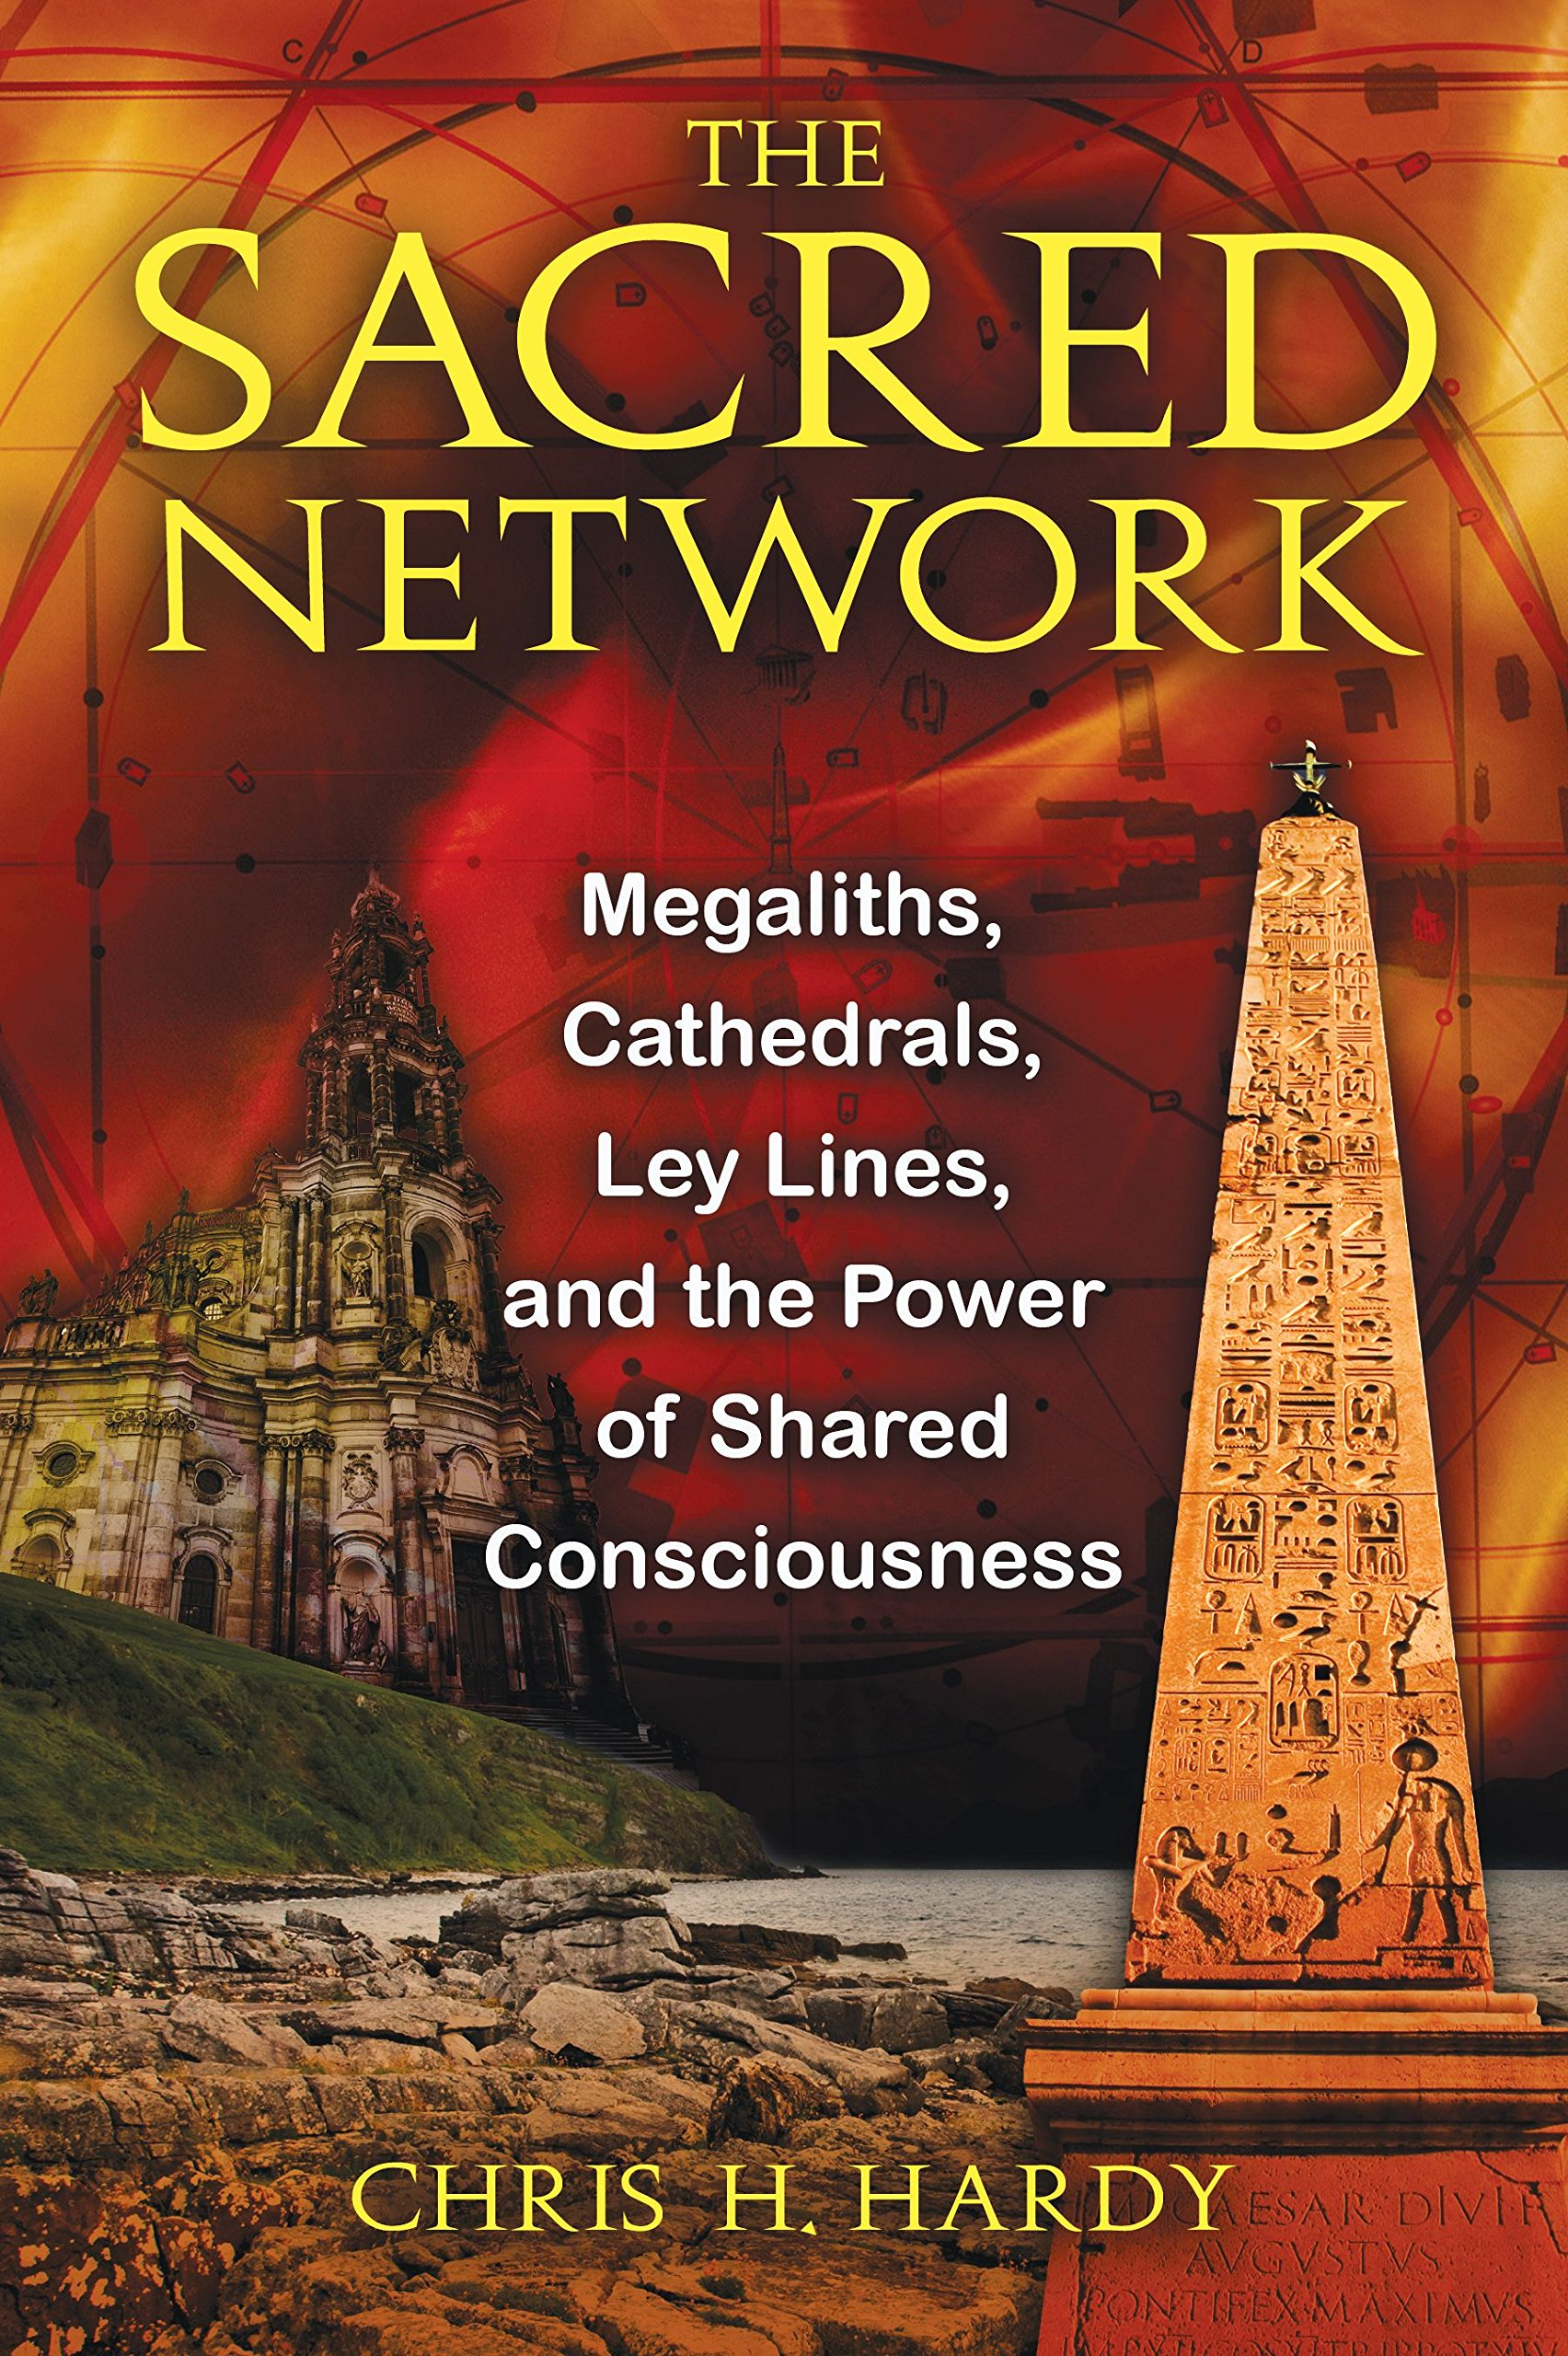 The Sacred Network: Megaliths, Cathedrals, Ley Lines, and